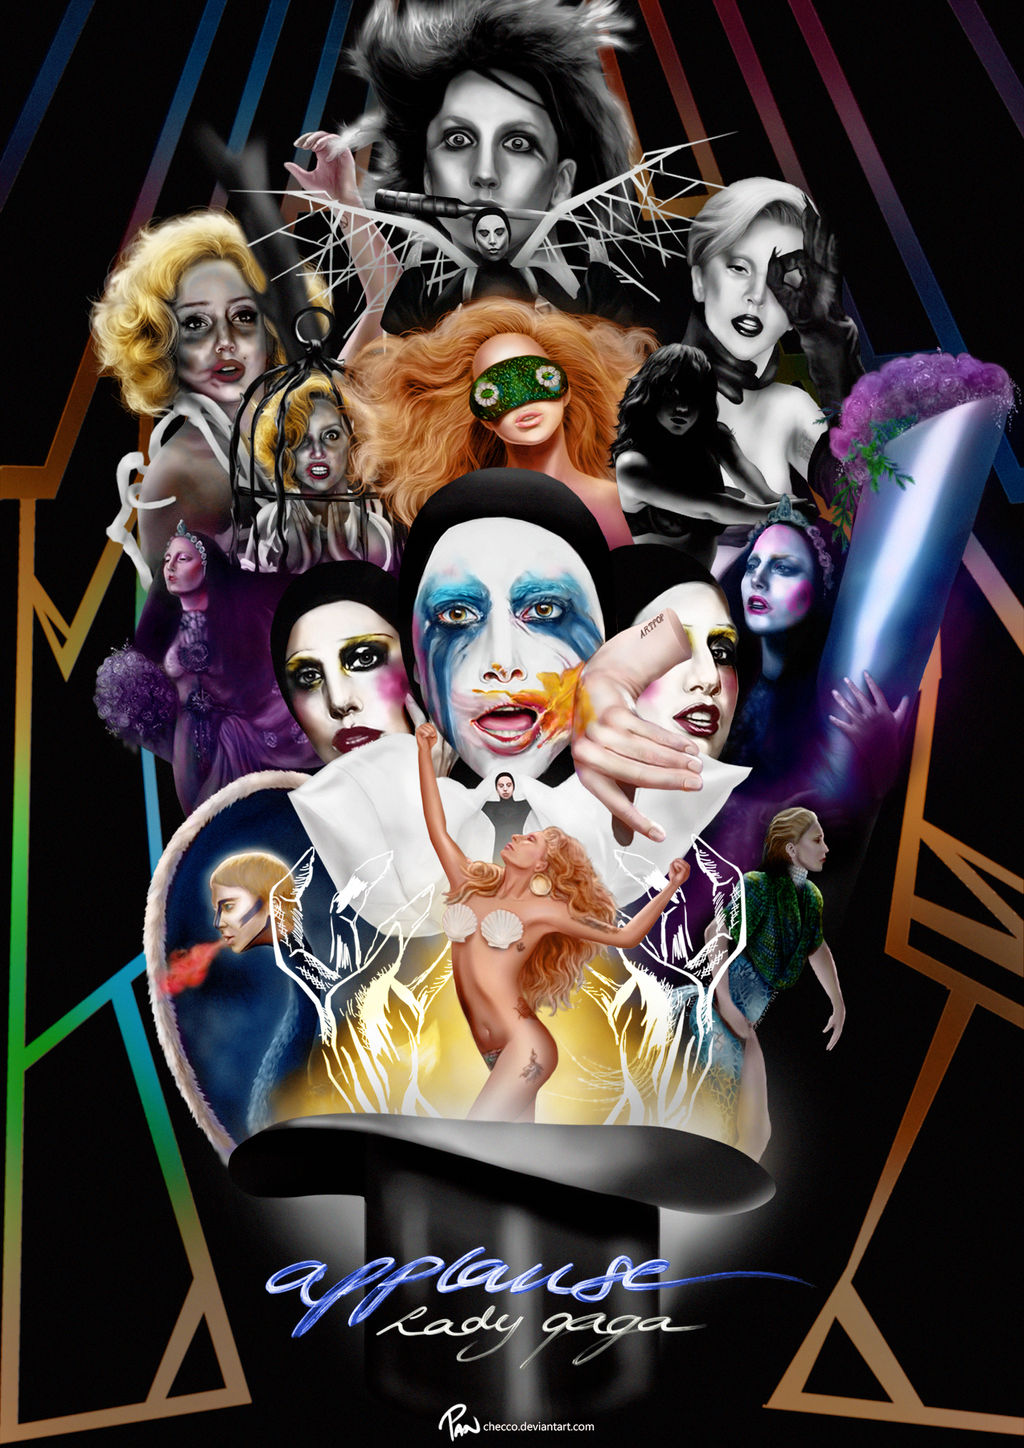 lady_gaga___applause_music_video__poster